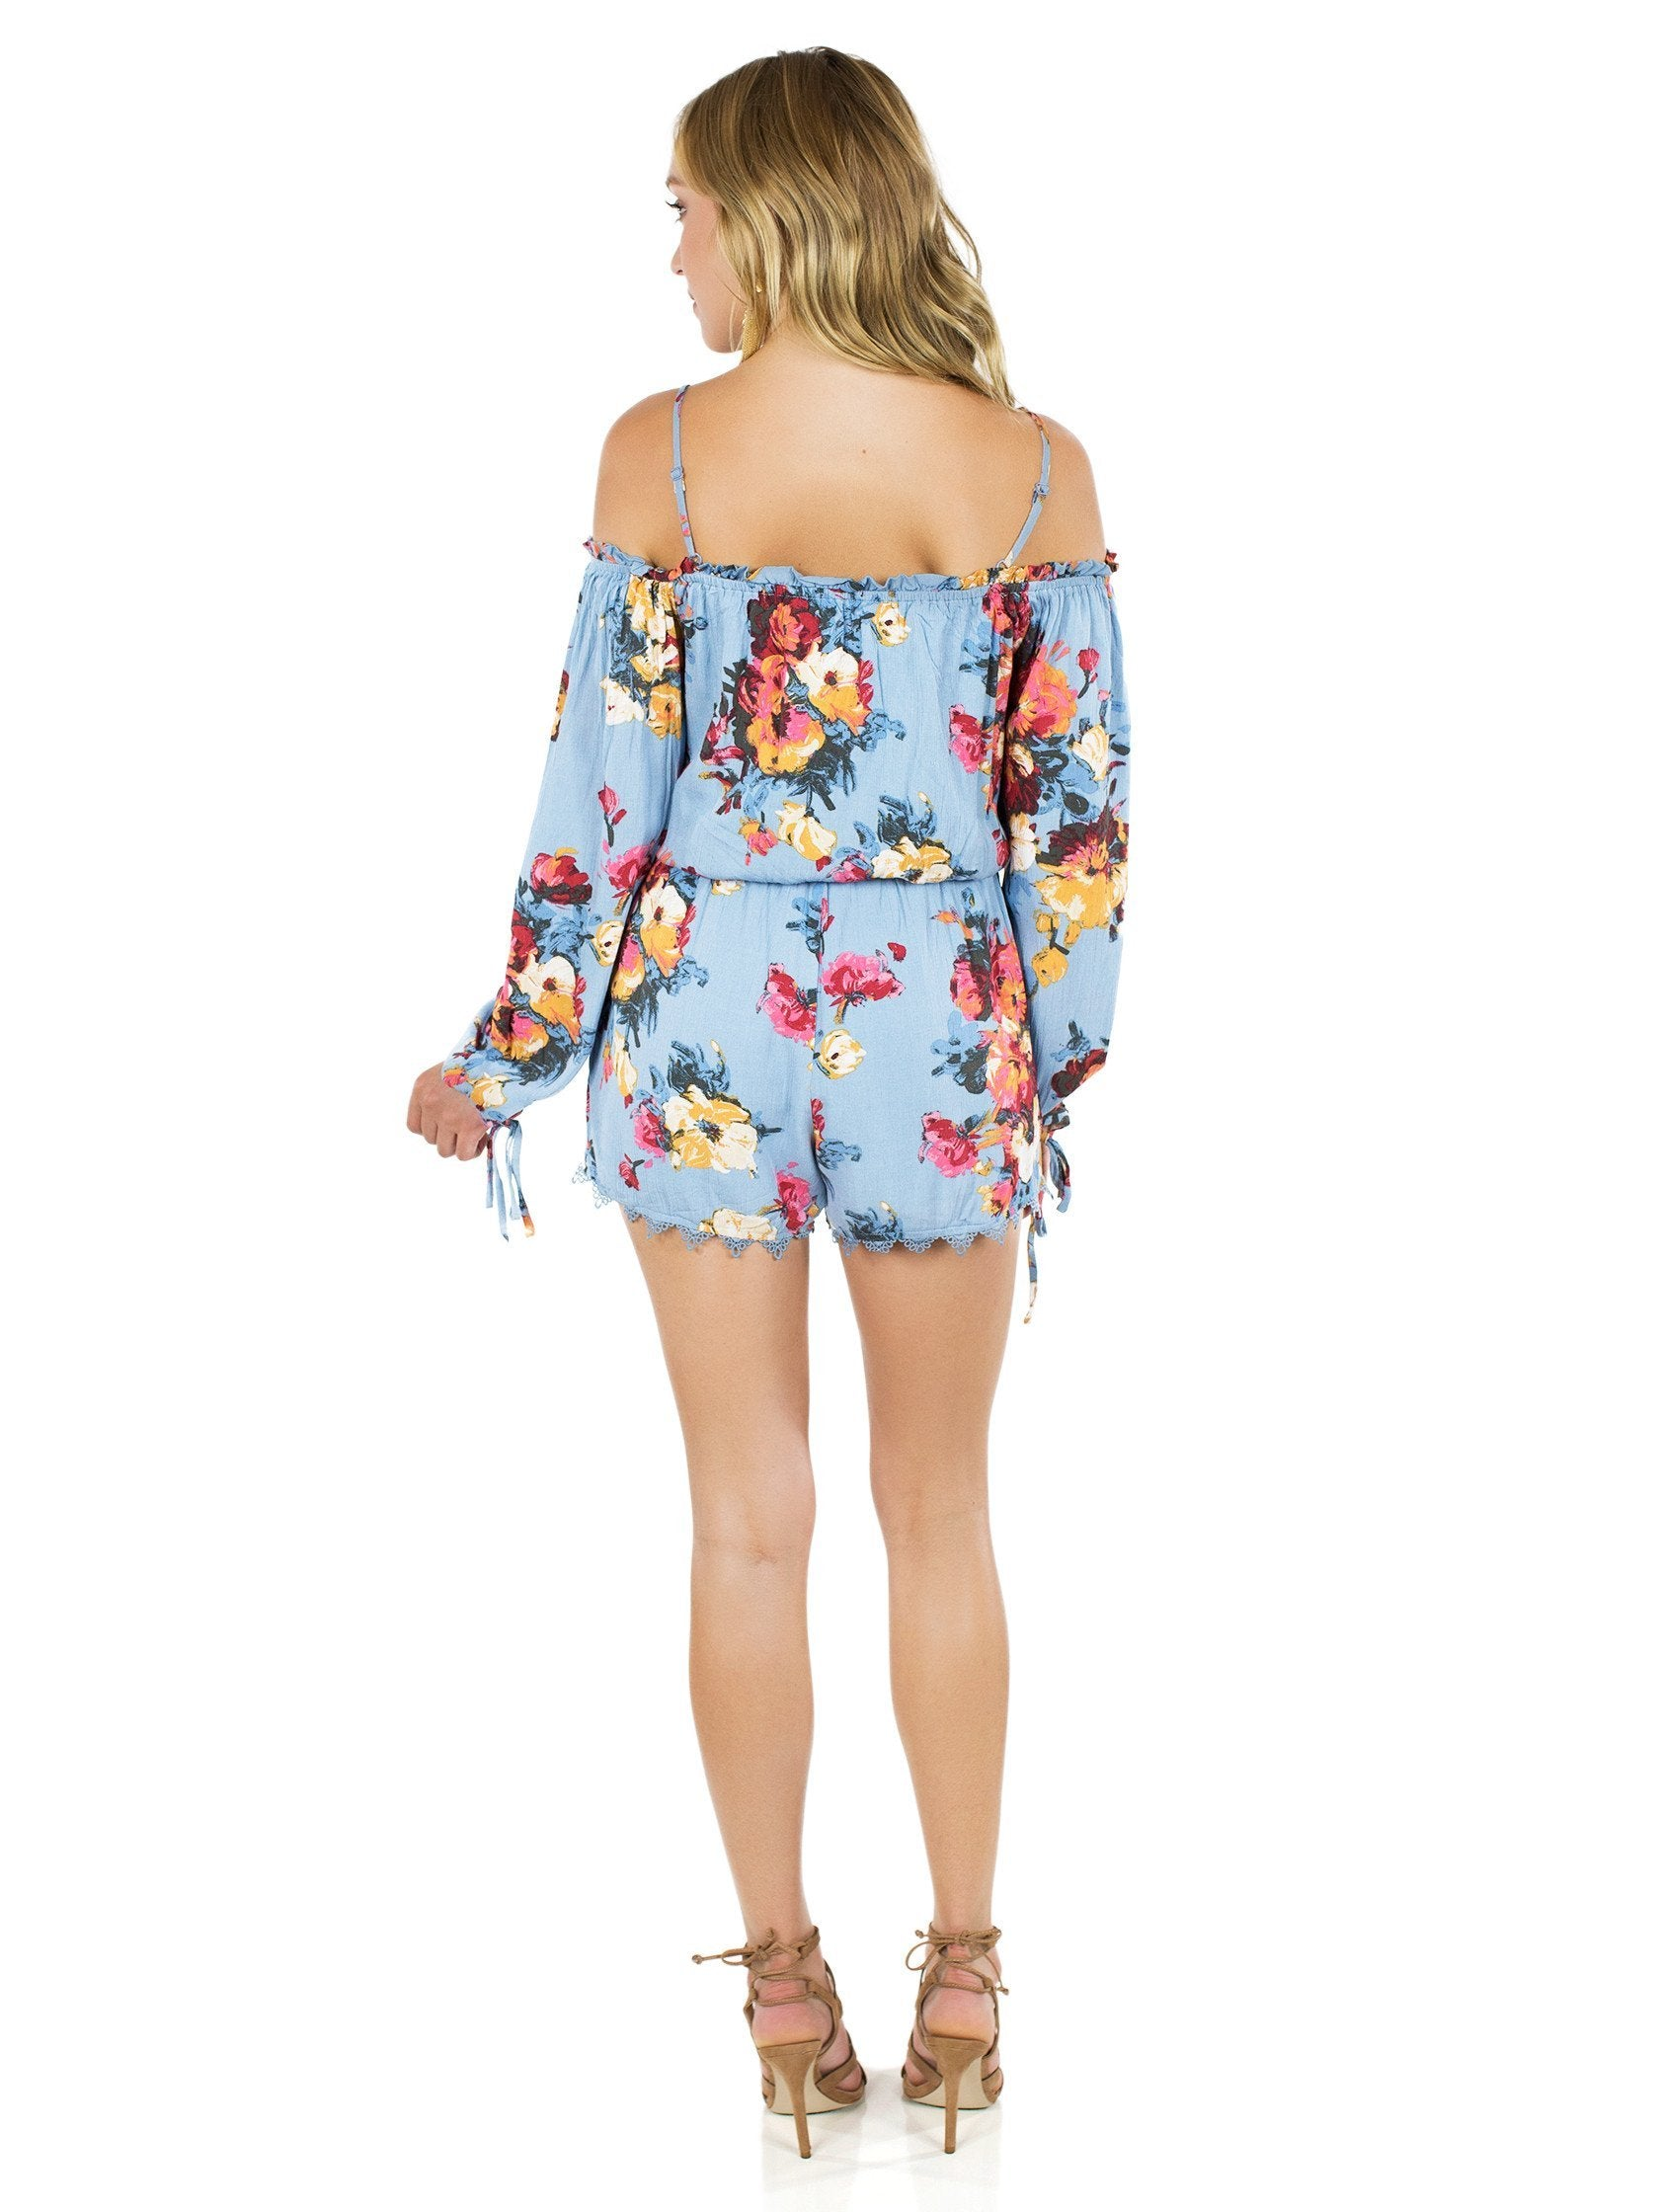 Women wearing a romper rental from FashionPass called Life Is Beautiful Romper